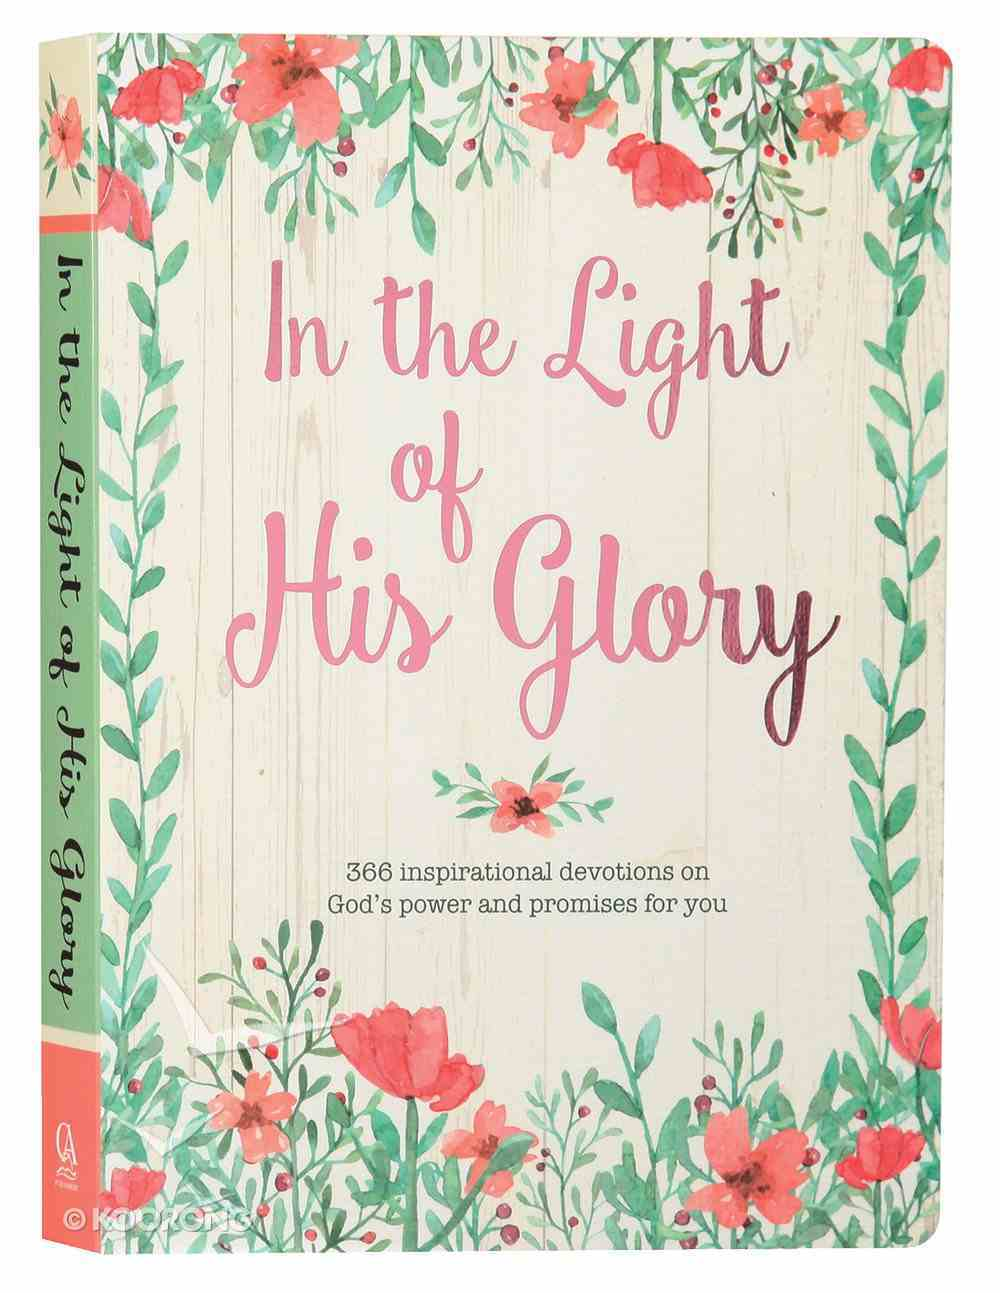 In the Light of His Glory: An Inspirational Devotional That Celebrates God's Promises and Glorious Grace Paperback